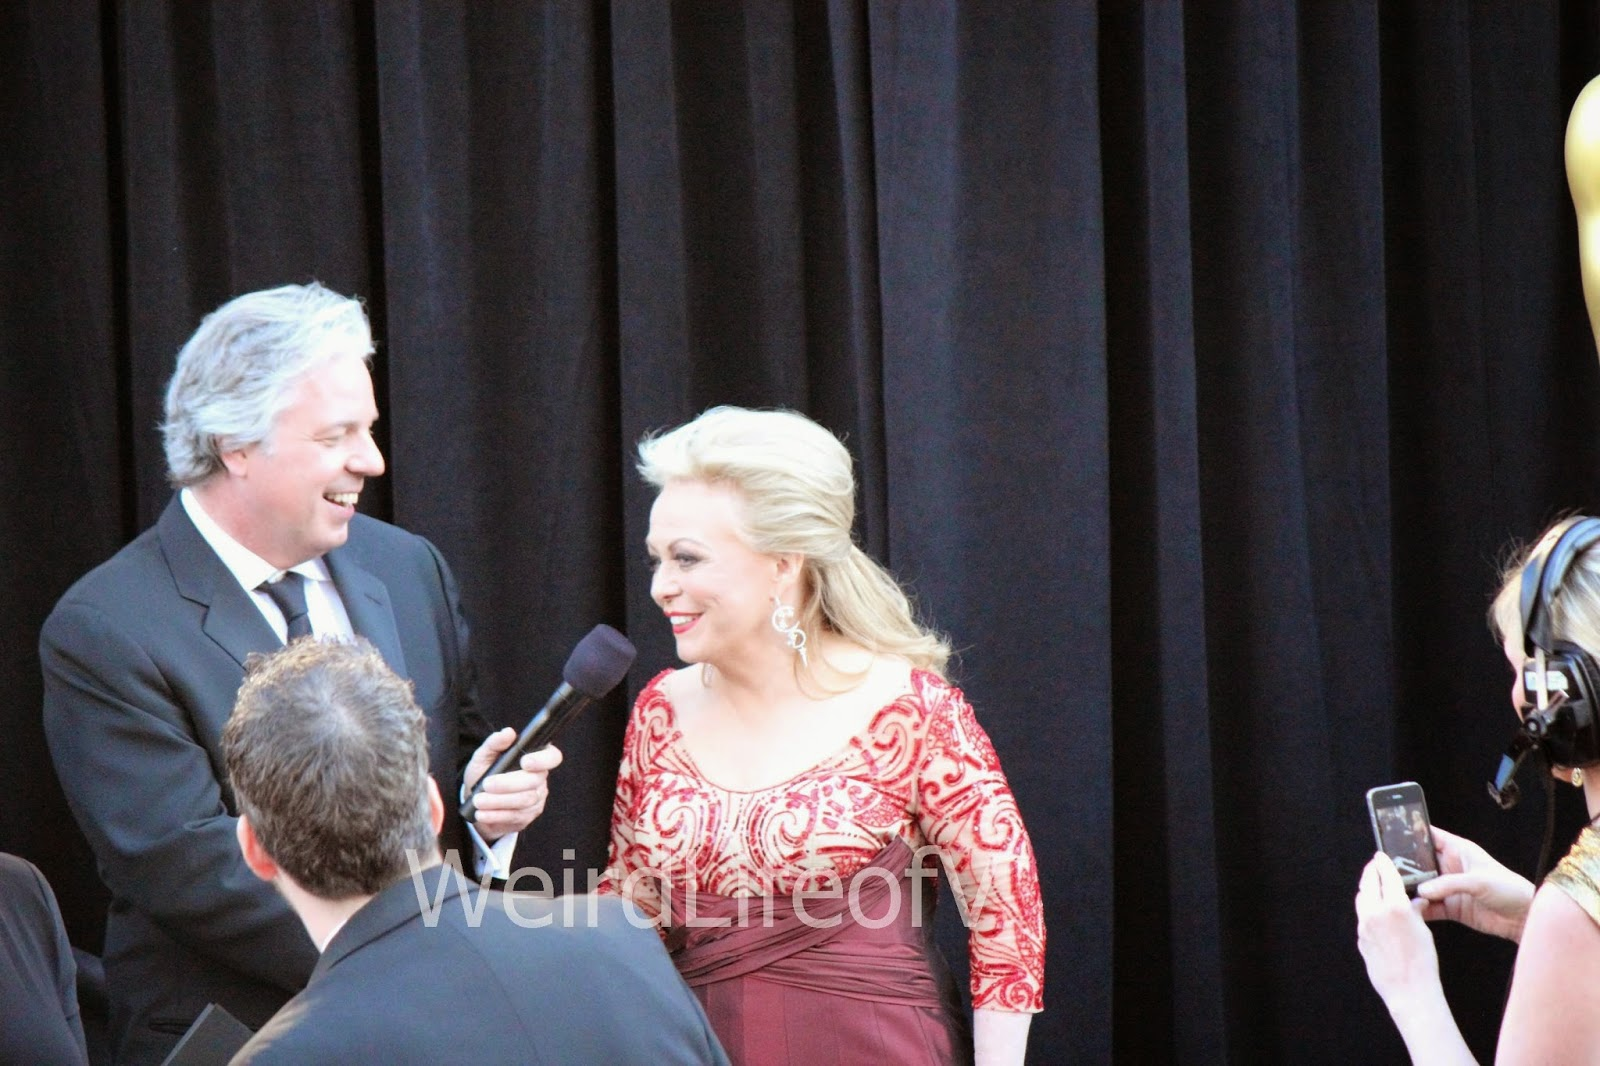 Jackie Weaver being interviewed by Chris Connelly at the 2013 Academy Awards